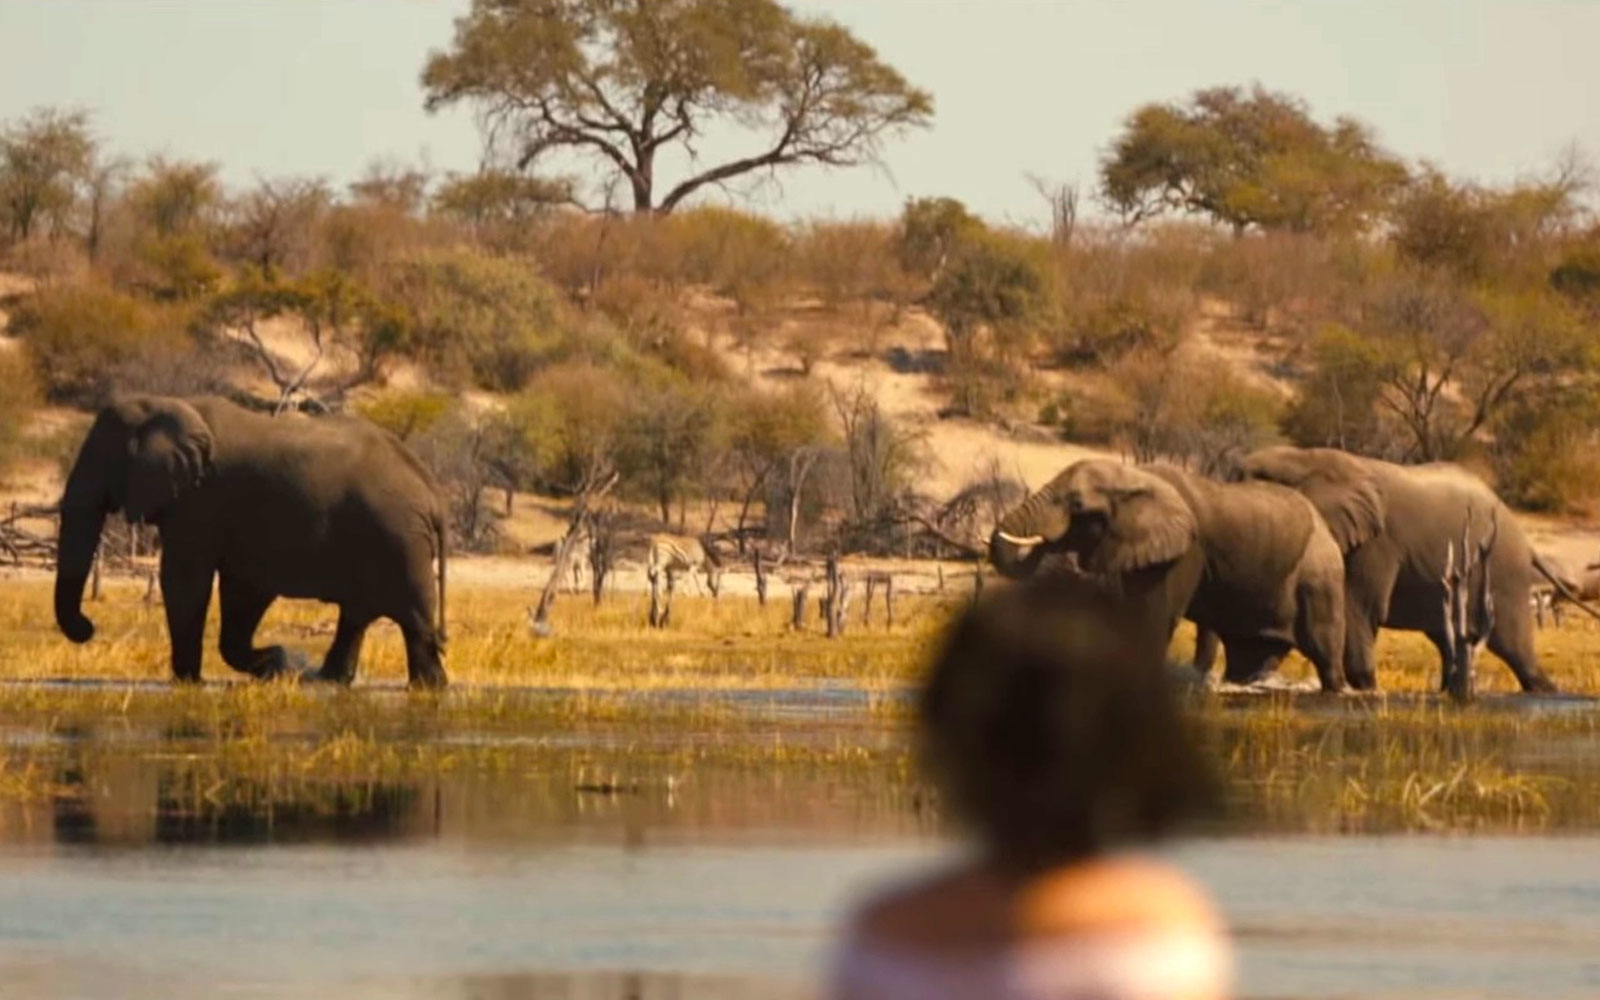 Best Place to See Elephants